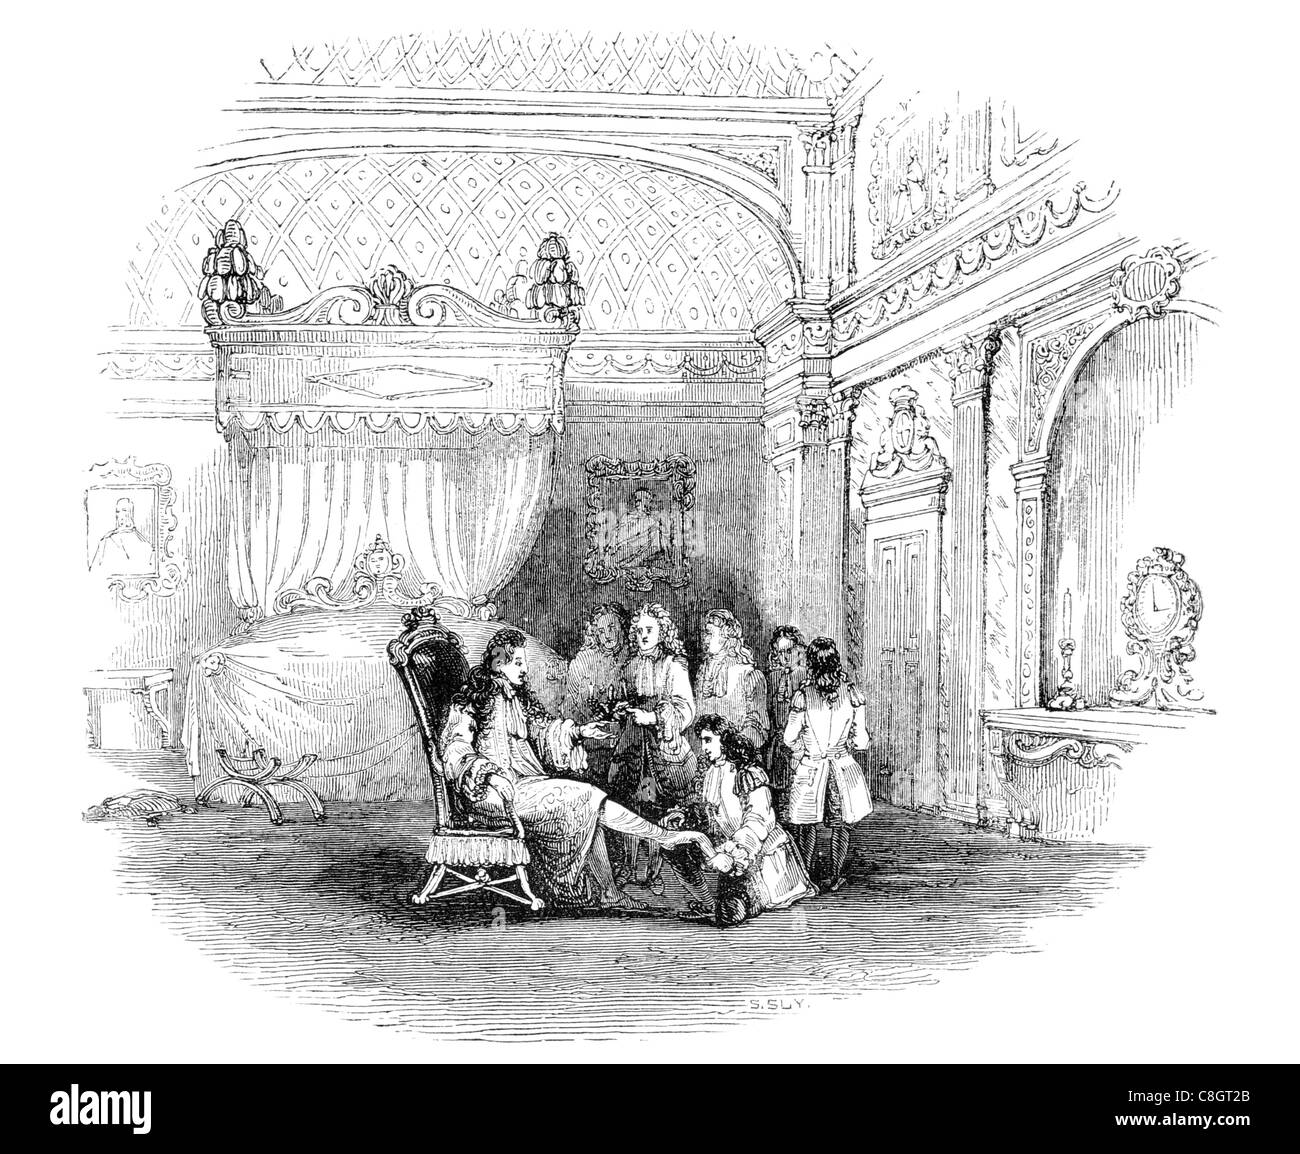 Bedroom Furniture Of Louis XIV King Regal Royal Imperial Sovereign Ruler Monarch Potentate Crowned Head Emperor